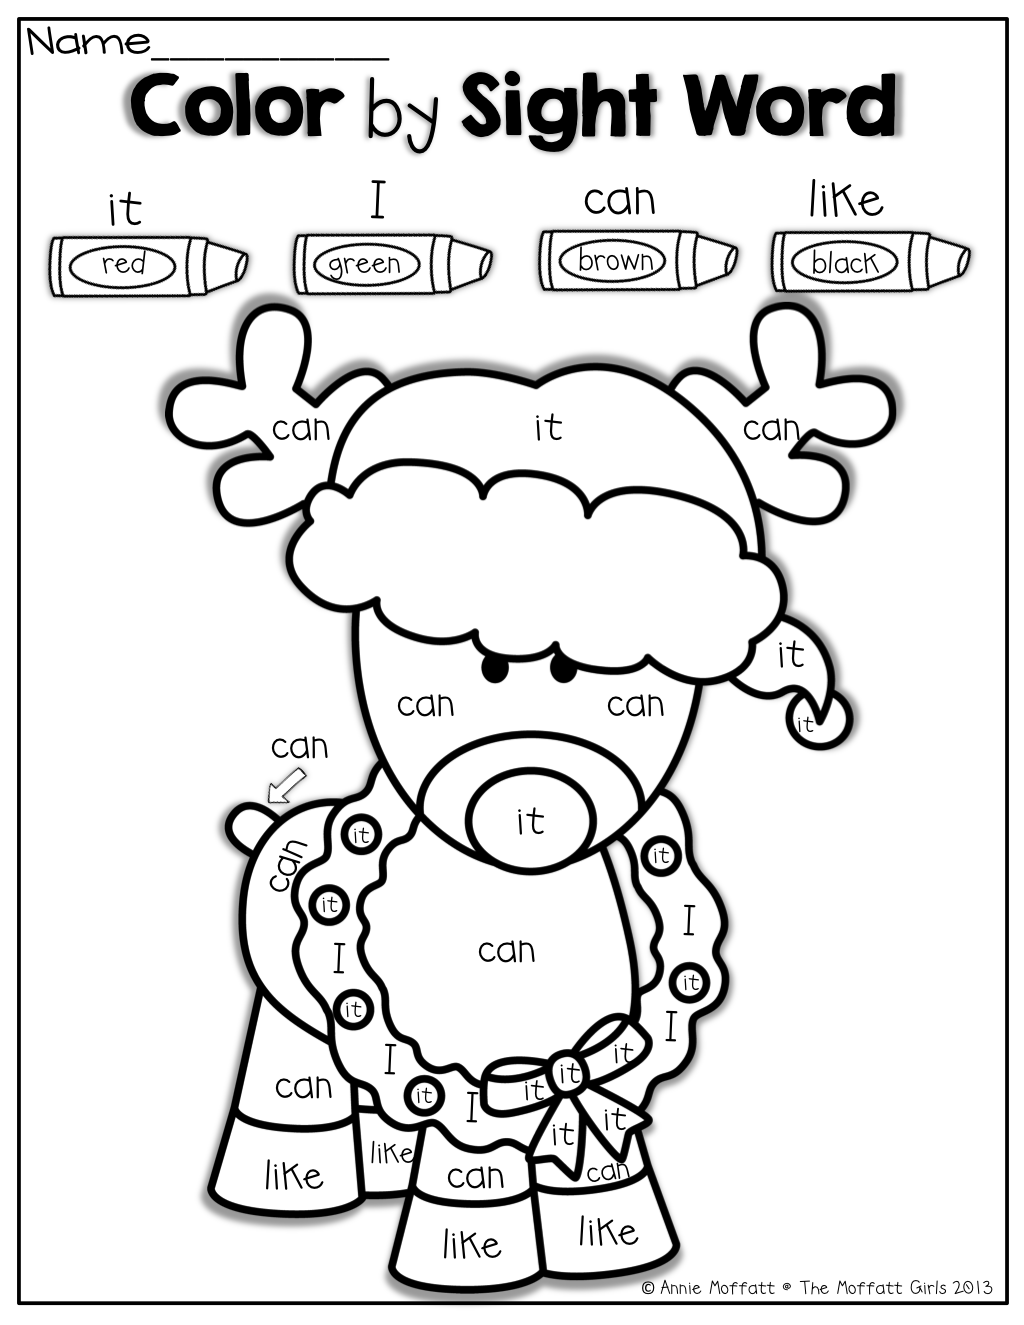 coloring pages using color words - photo#17